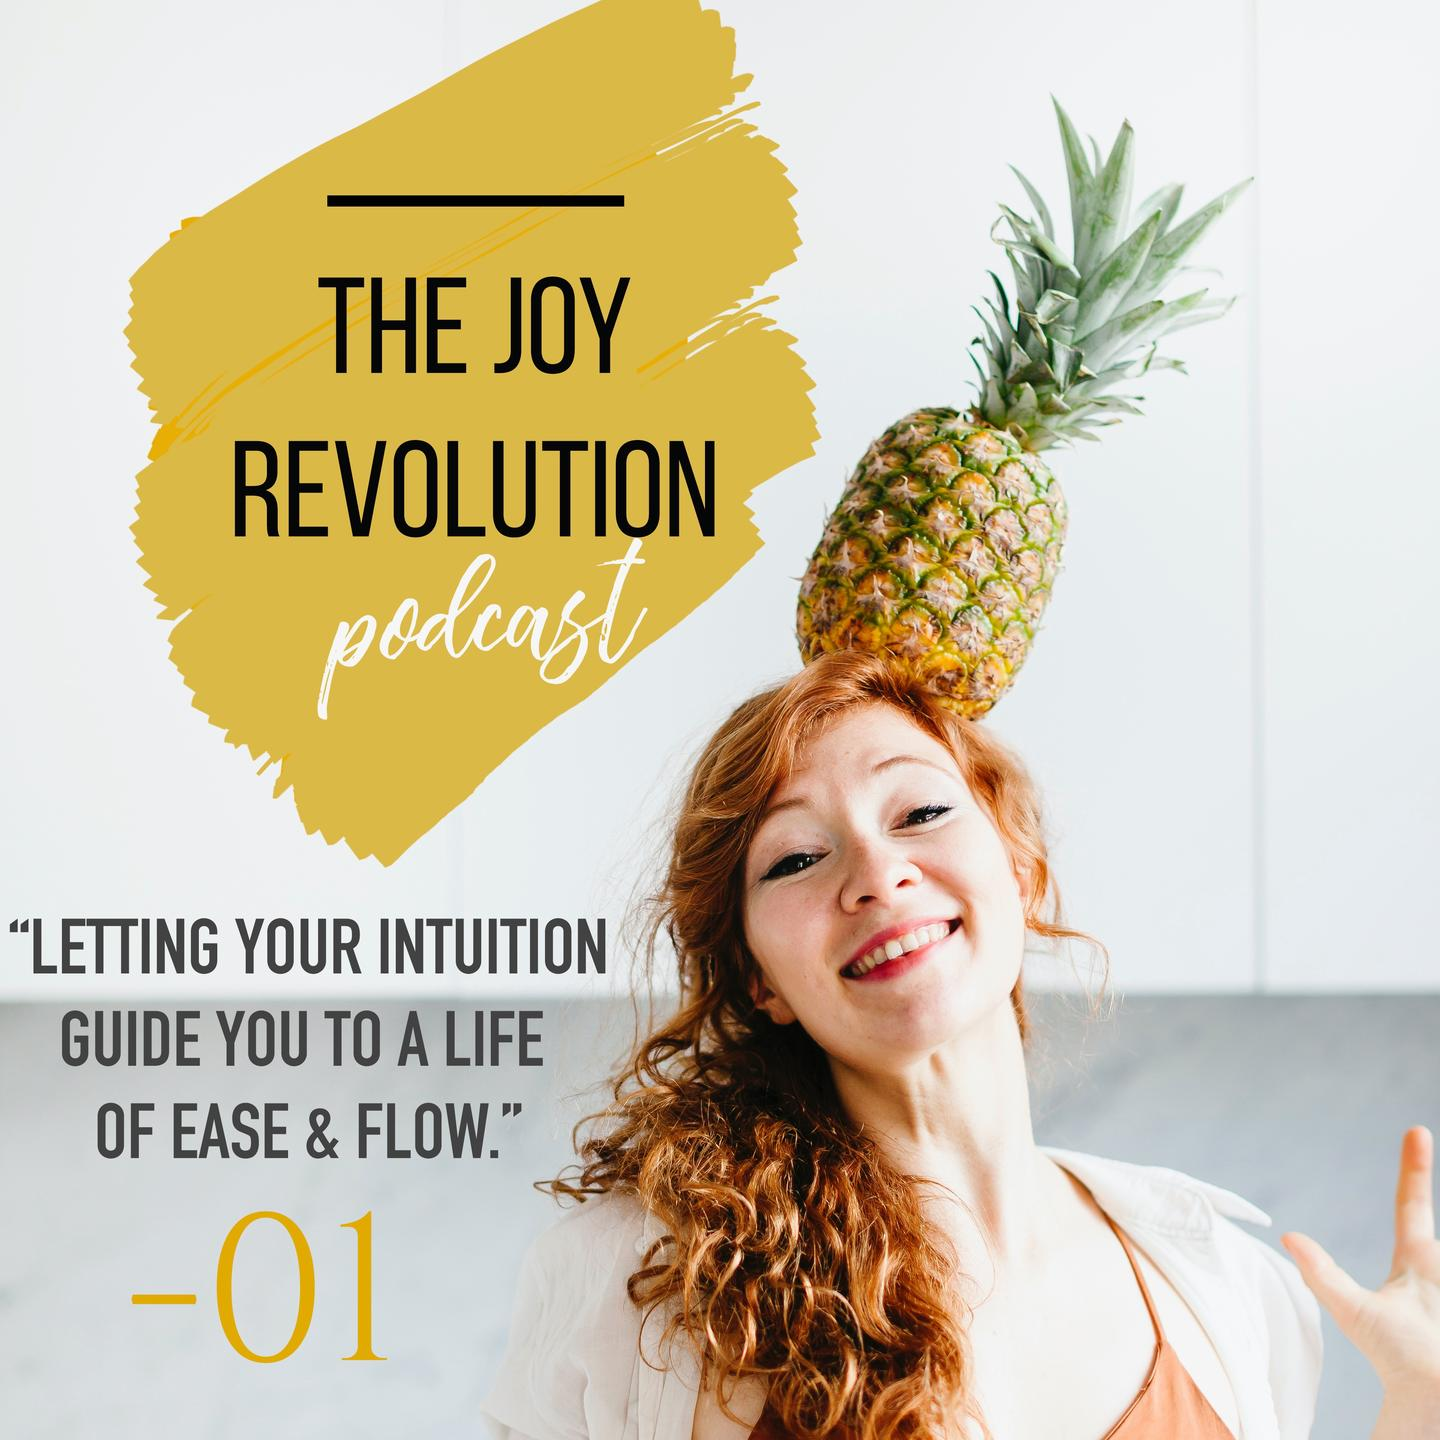 The Joy Revolution Podcast - Isabelle Ysebaert